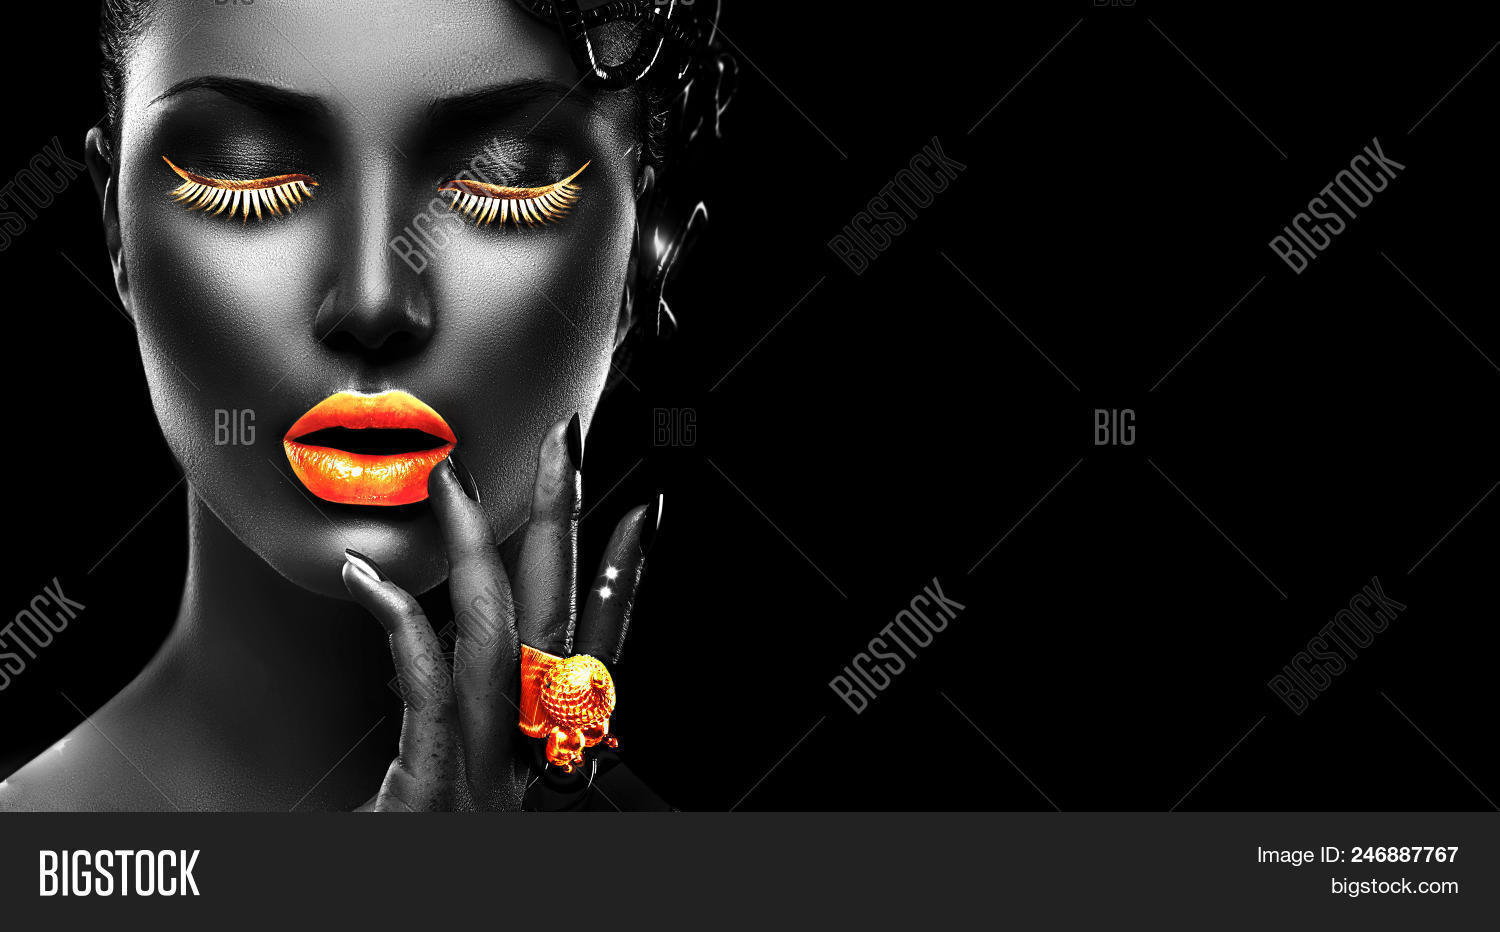 148e235a827 High Fashion Model with black skin, gold lips, eyelashes and jewellery -  golden ring